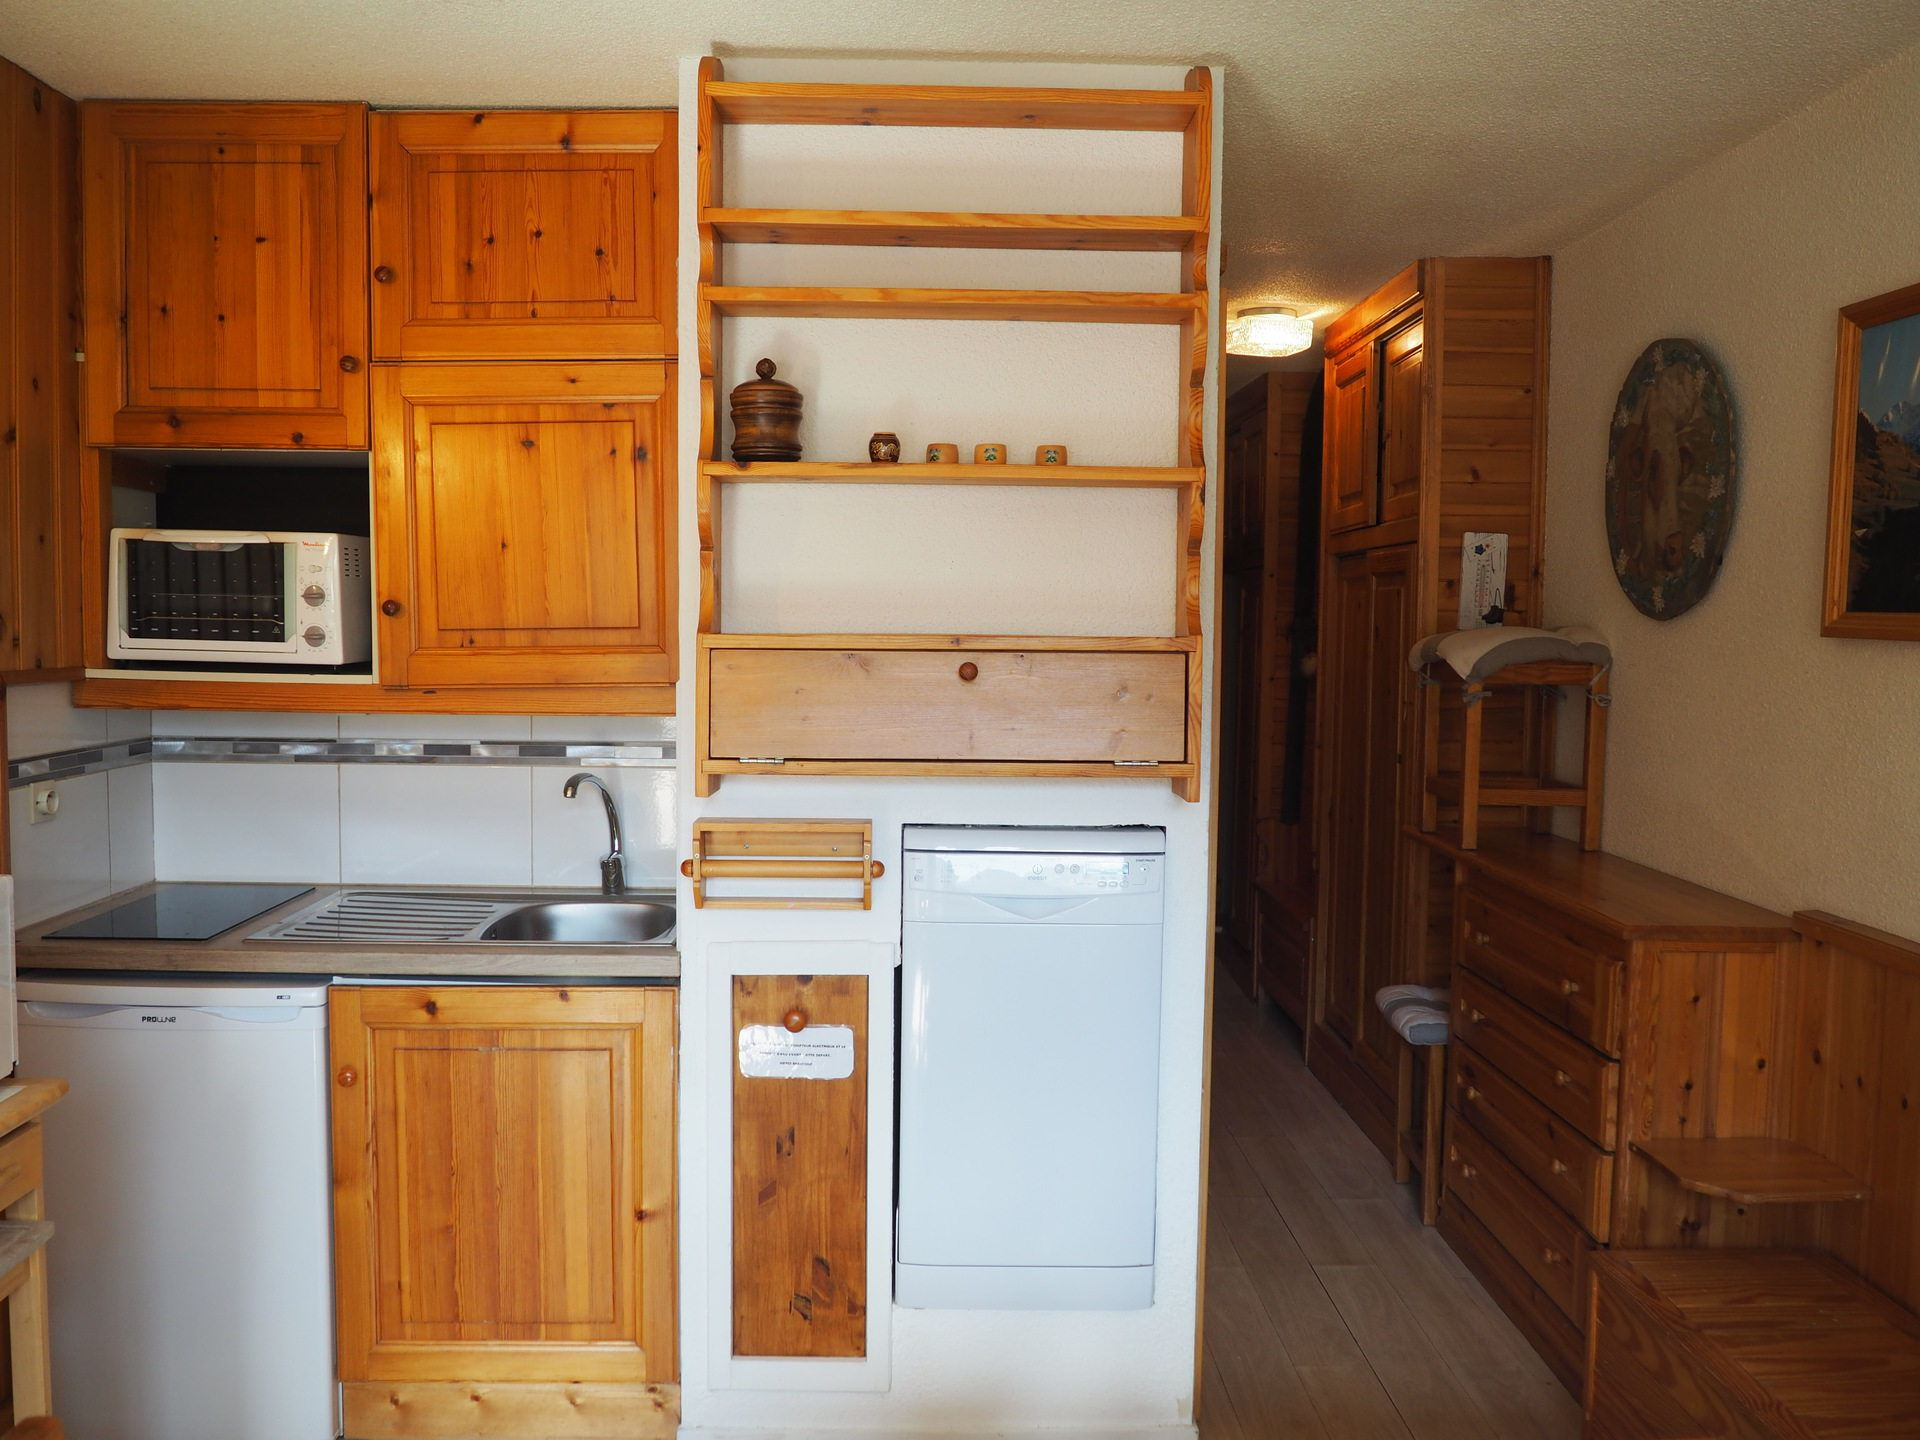 2 Rooms + cabin 4 Pers ski-in ski-out / ASTERS A1 322